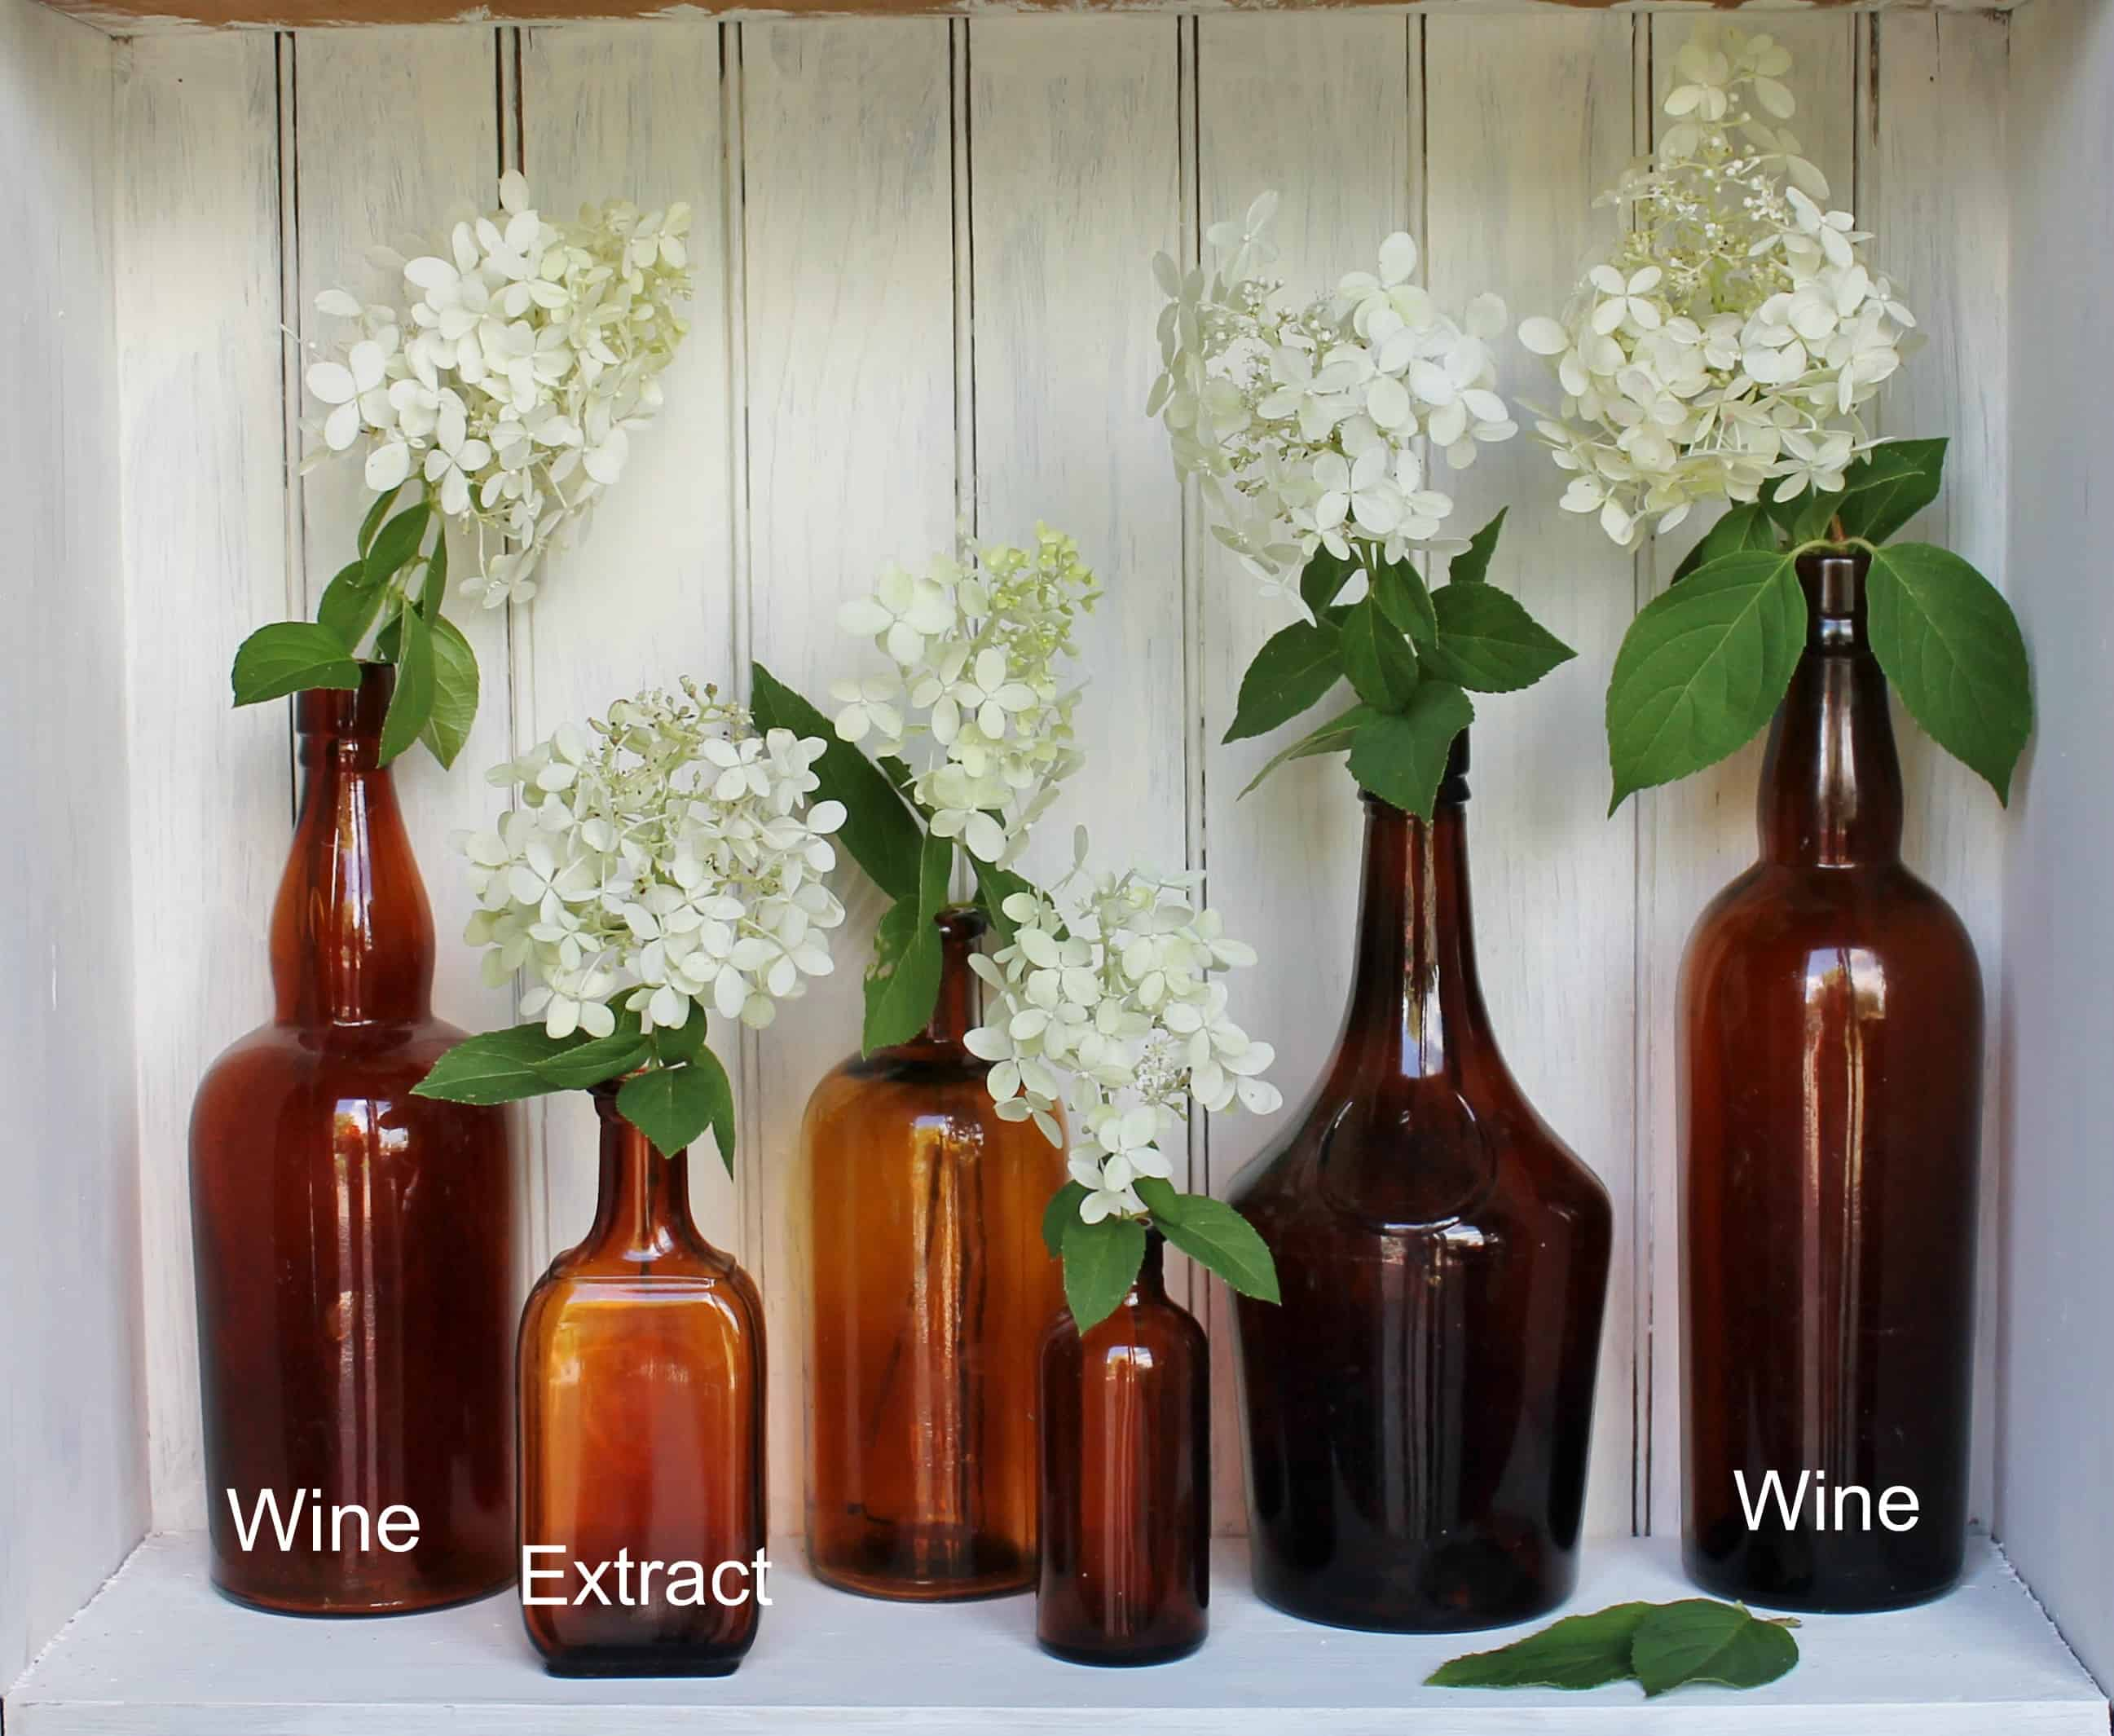 Vintage amber bottles with wines and extract